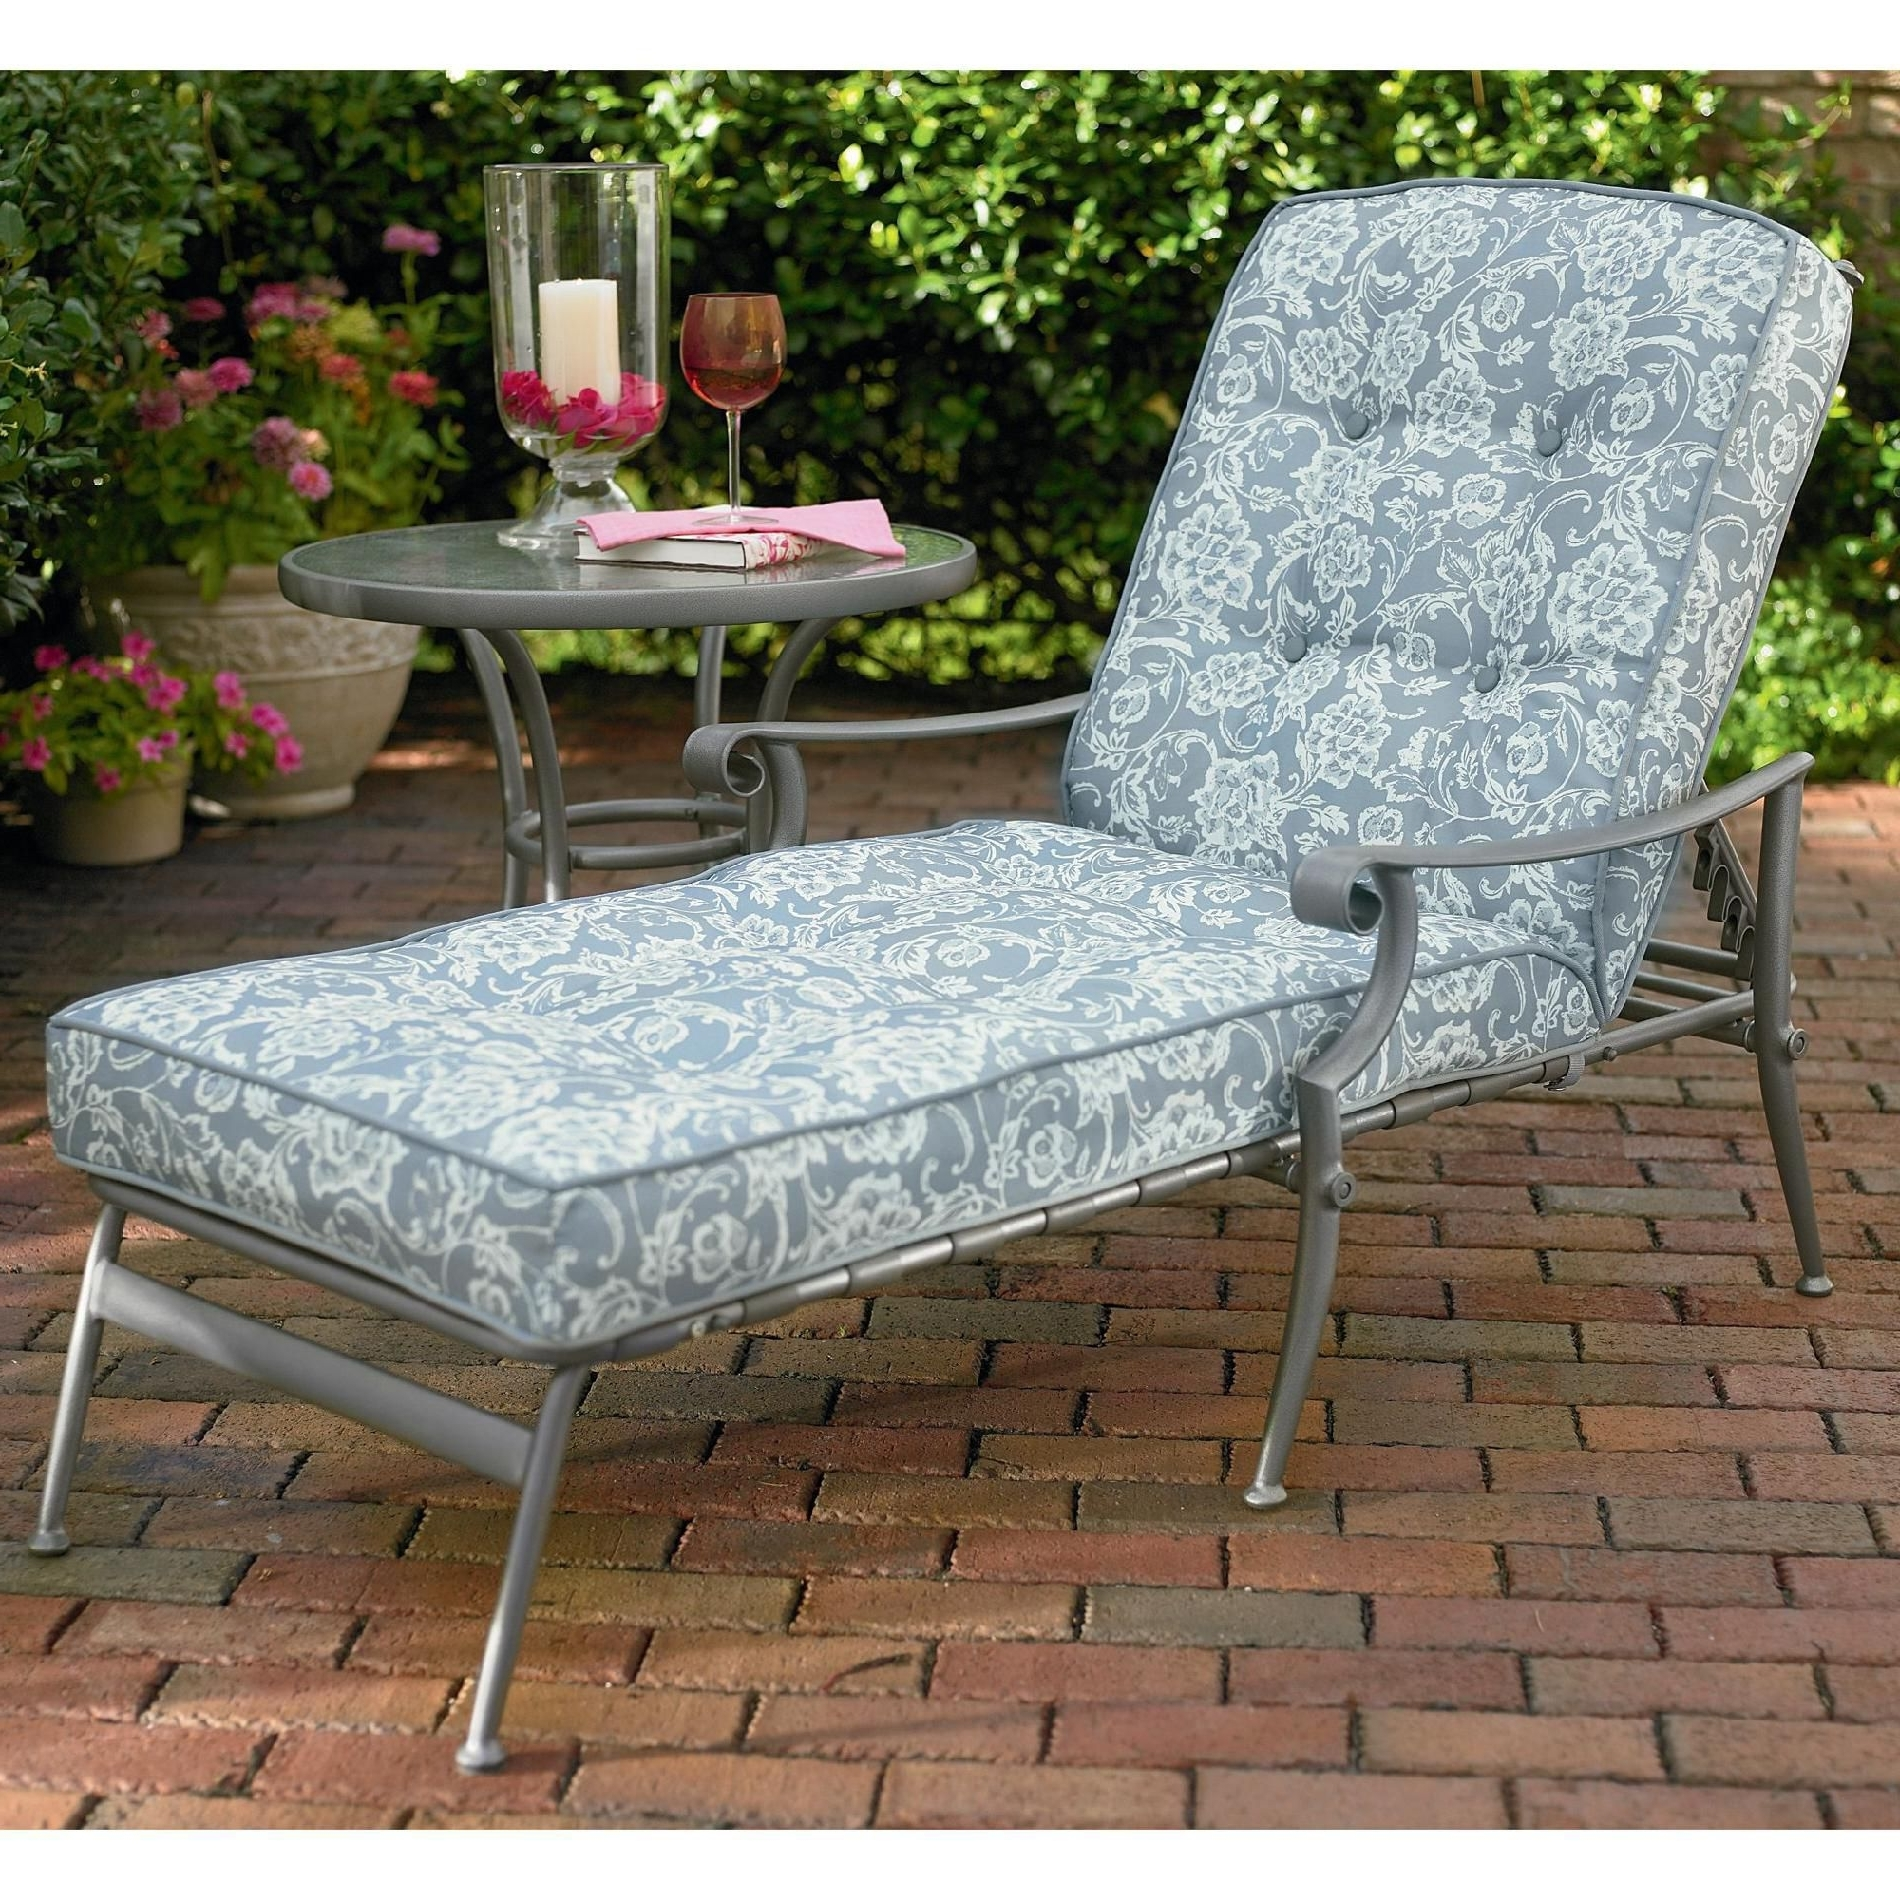 Well Known Outdoor Cushions For Chaise Lounge Chairs With Convertible Chair : Lounge Chairs Aluminum Chaise Lounge Chairs (View 13 of 15)